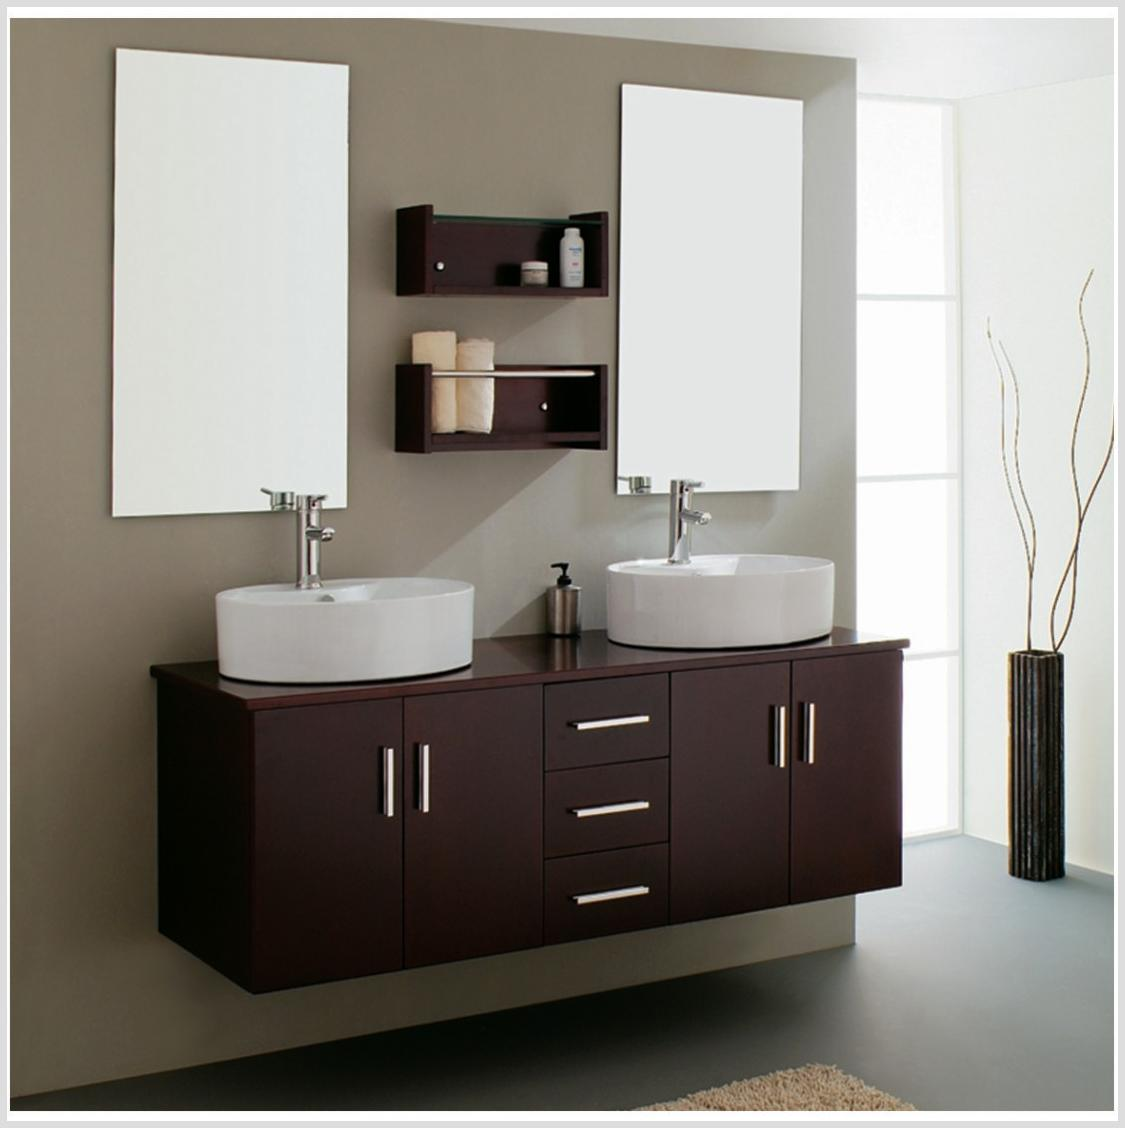 Remarkable Bathroom Vanities and Cabinets 1125 x 1128 · 74 kB · jpeg